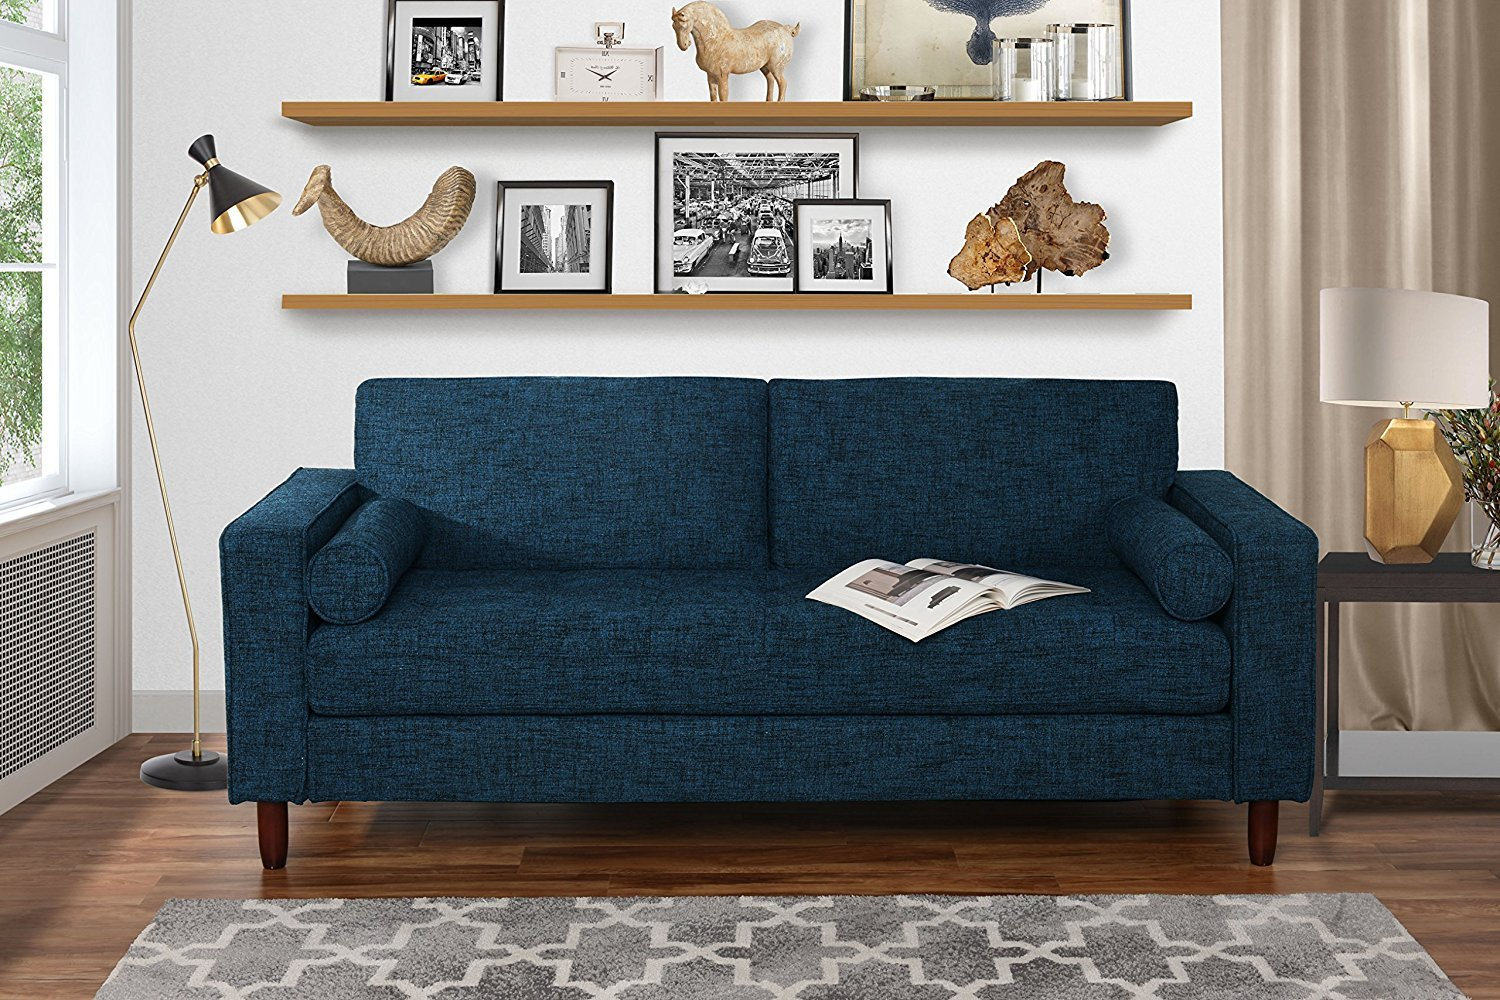 Superbe Modern Fabric Sofa With Tufted Linen Fabric   Living Room Couch (Dark Blue)